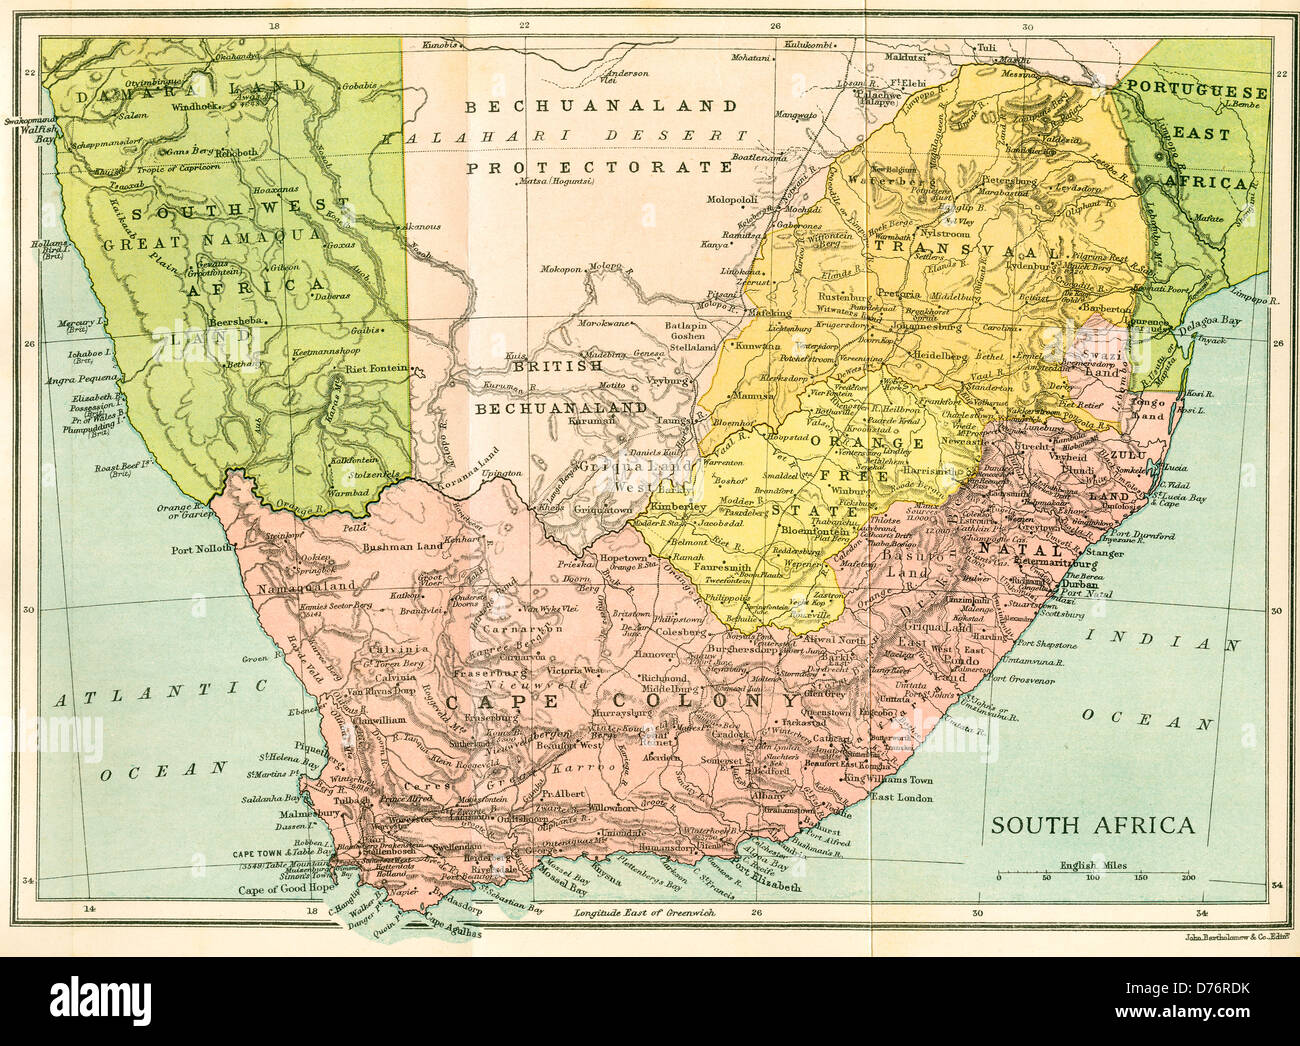 Map of South Africa since 1815, Kaffir and Boer Wars. - Stock Image